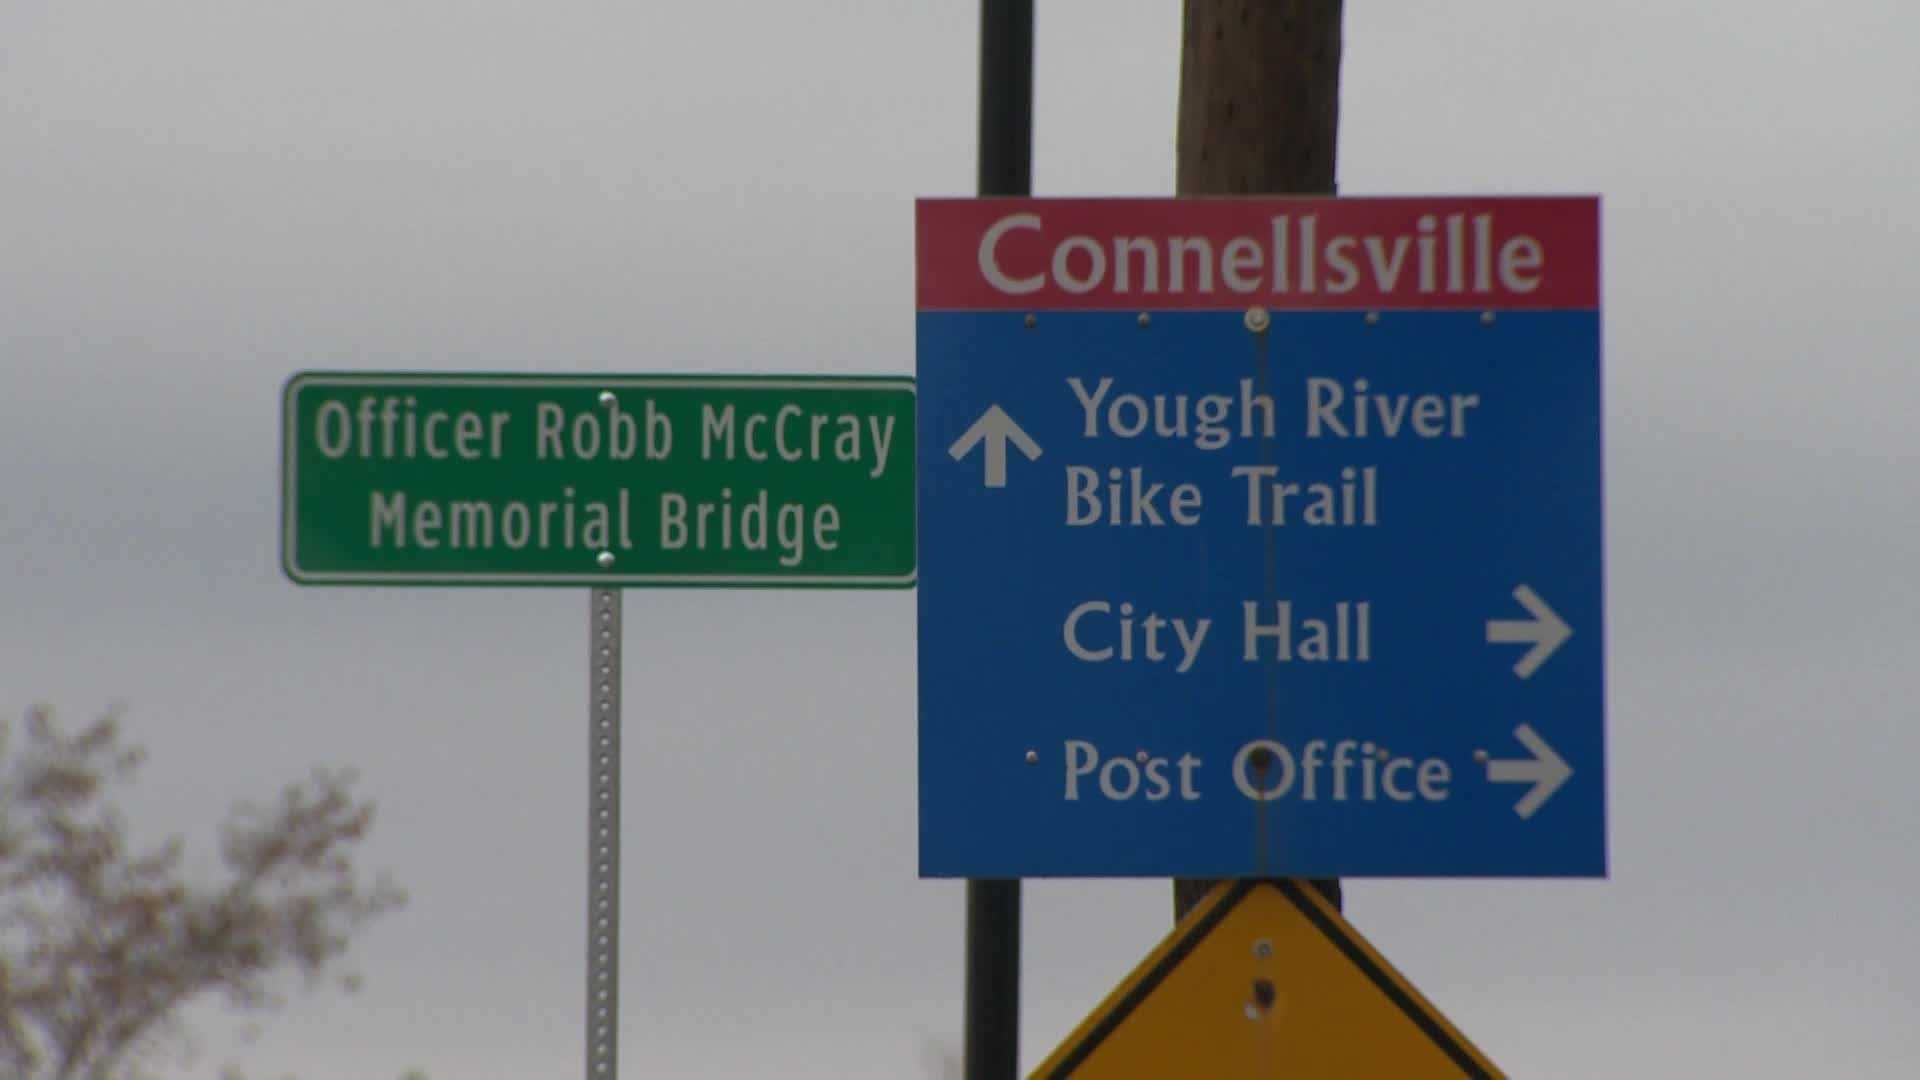 The West Crawford Avenue Bridge was renamed in honor of Officer McCray Robb, but the sign misidentifies him as Robb McCray.